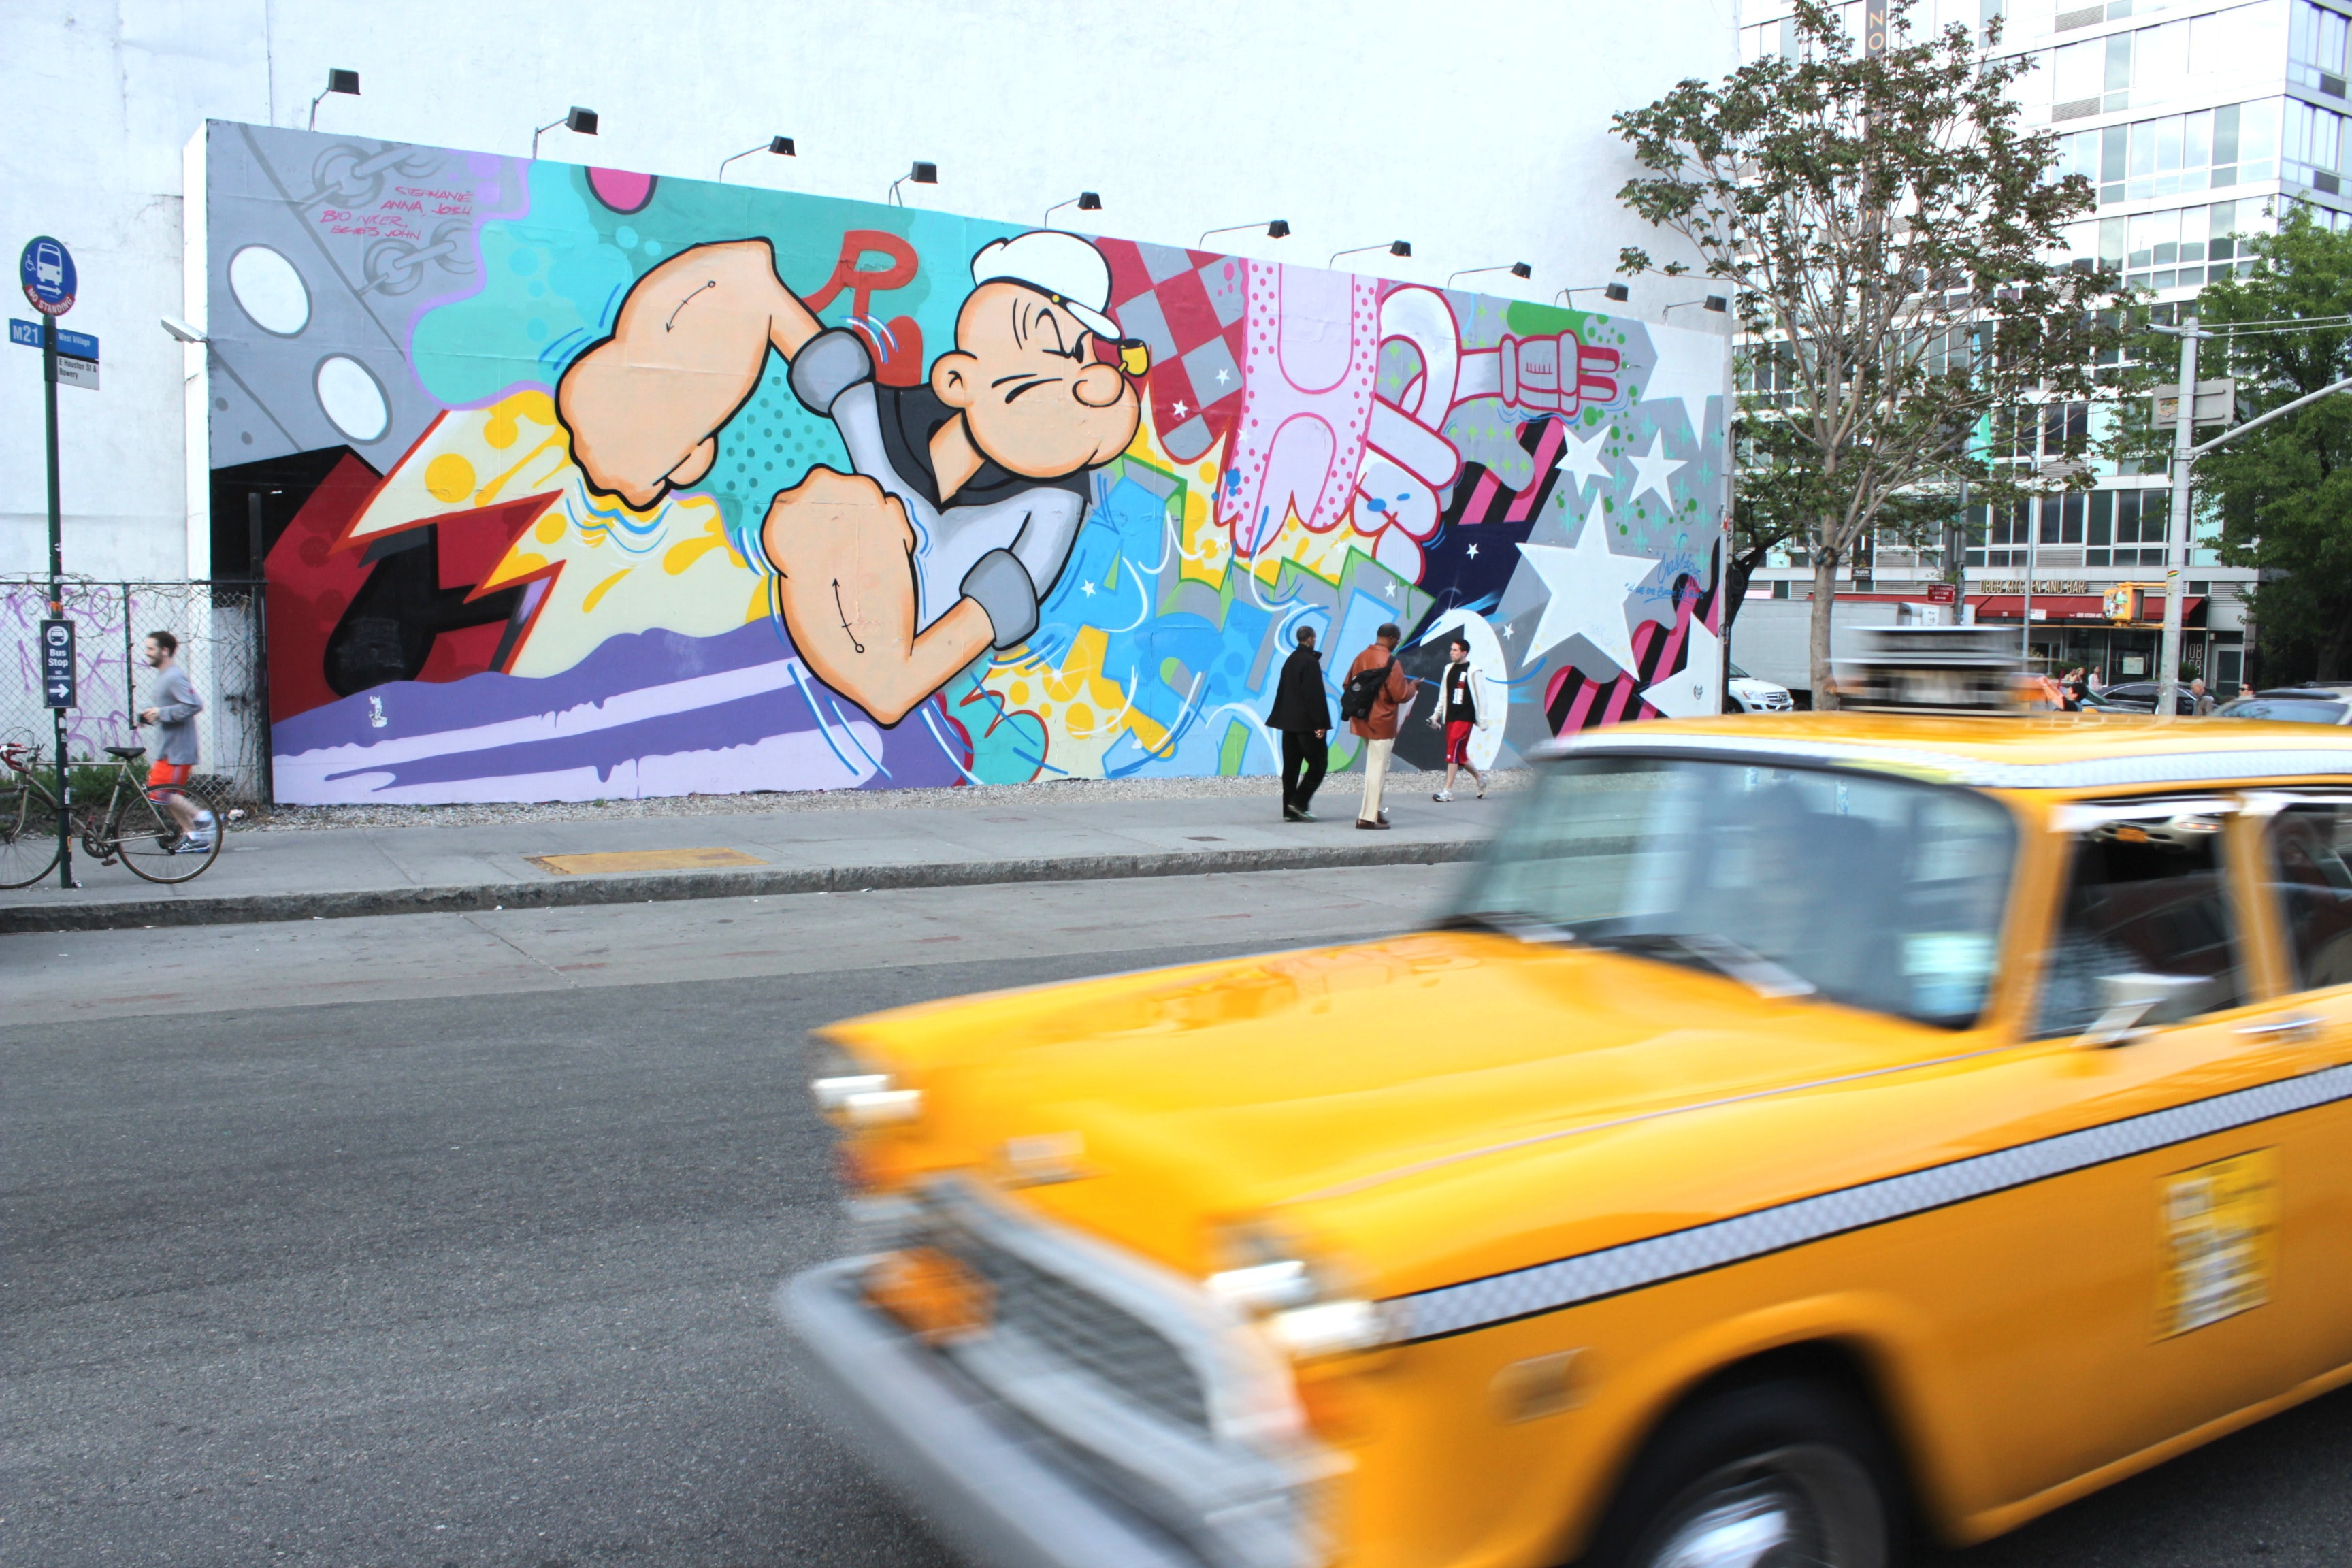 Long shot of colorful popeye graffiti at daytime with yellow taxicab driving past on road